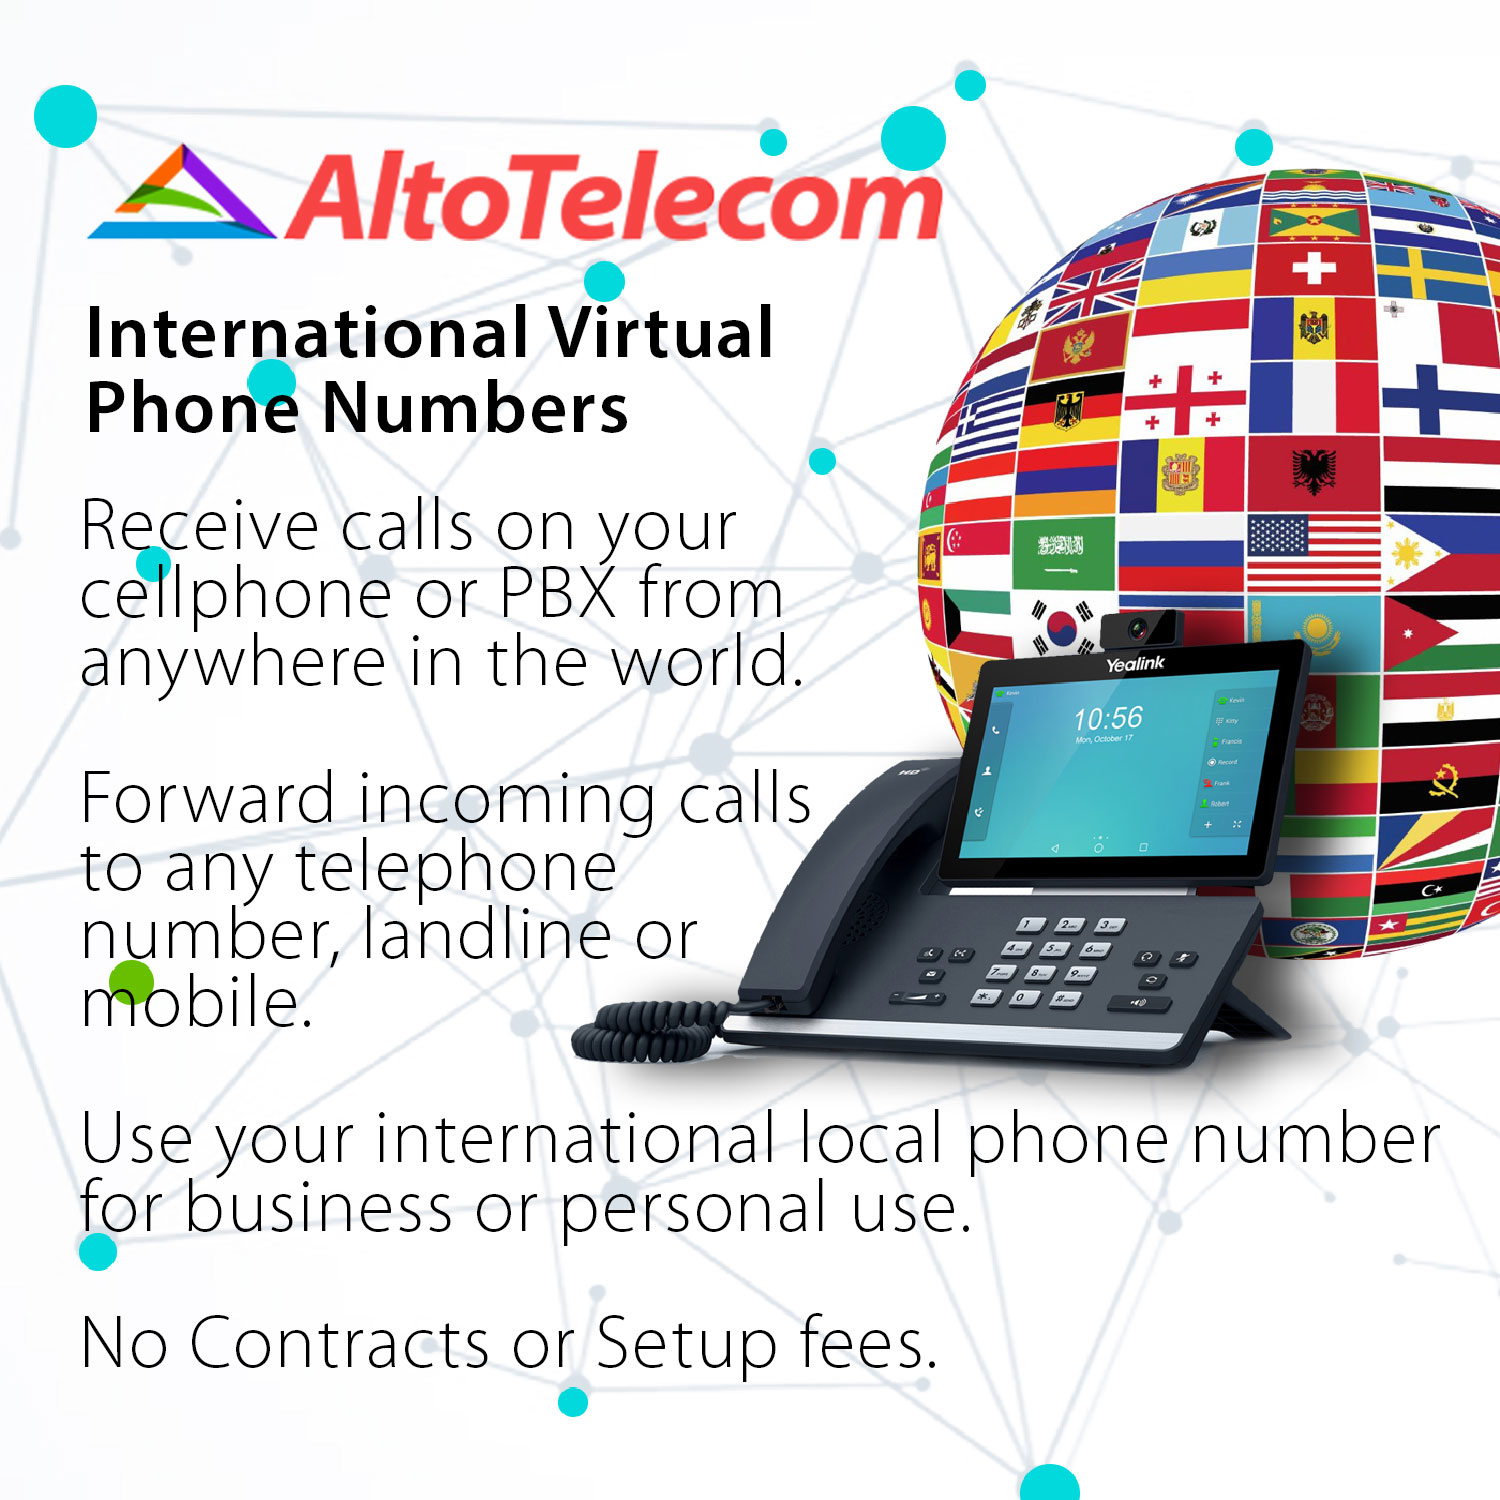 International VoIP Telephone Numbers from 44 countries